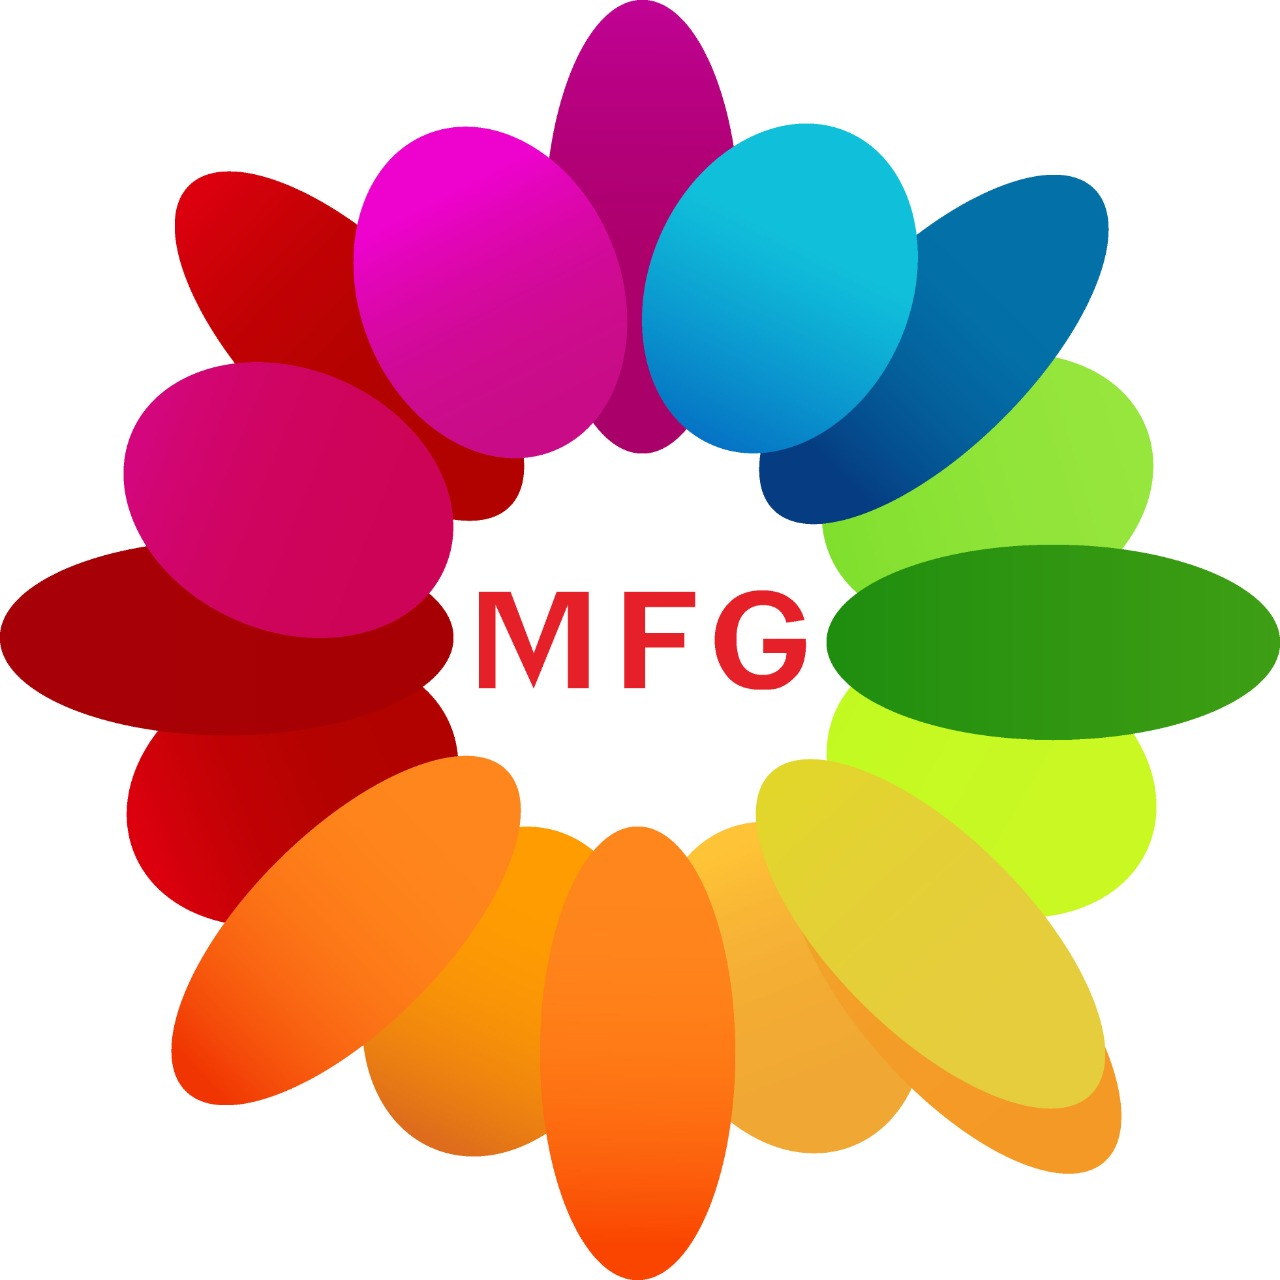 1Kg Chocolate Cheese Cake